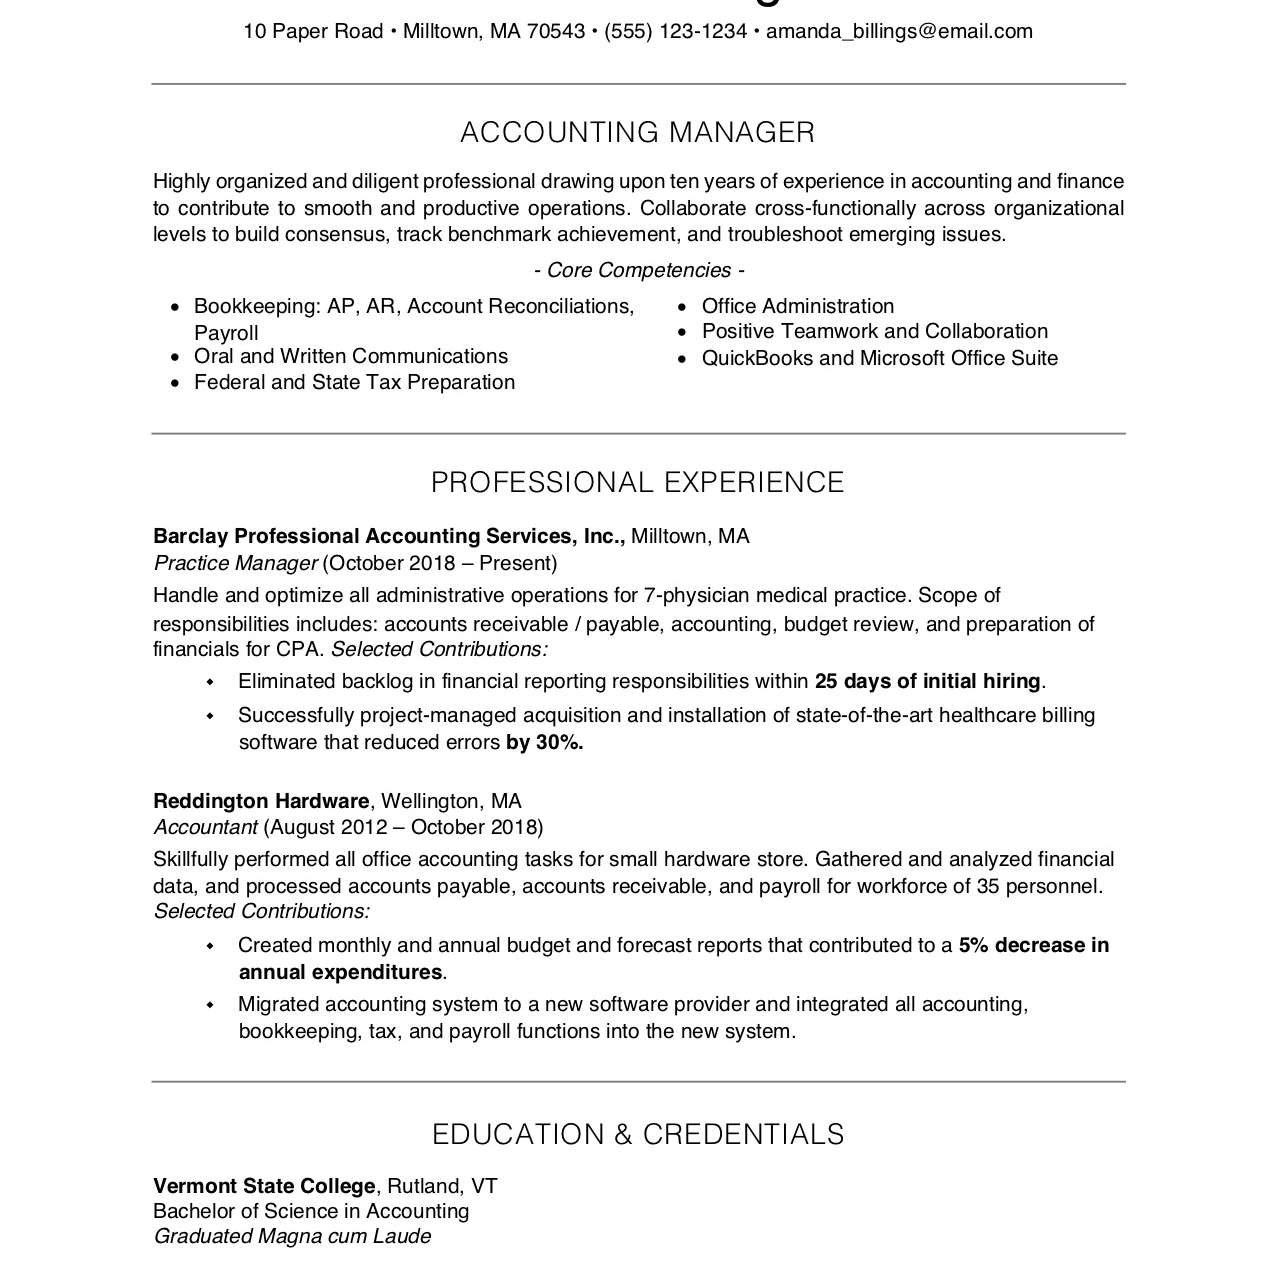 free professional resume examples and writing tips samples for job seekers 2063596res1 Resume Resume Samples For Job Seekers